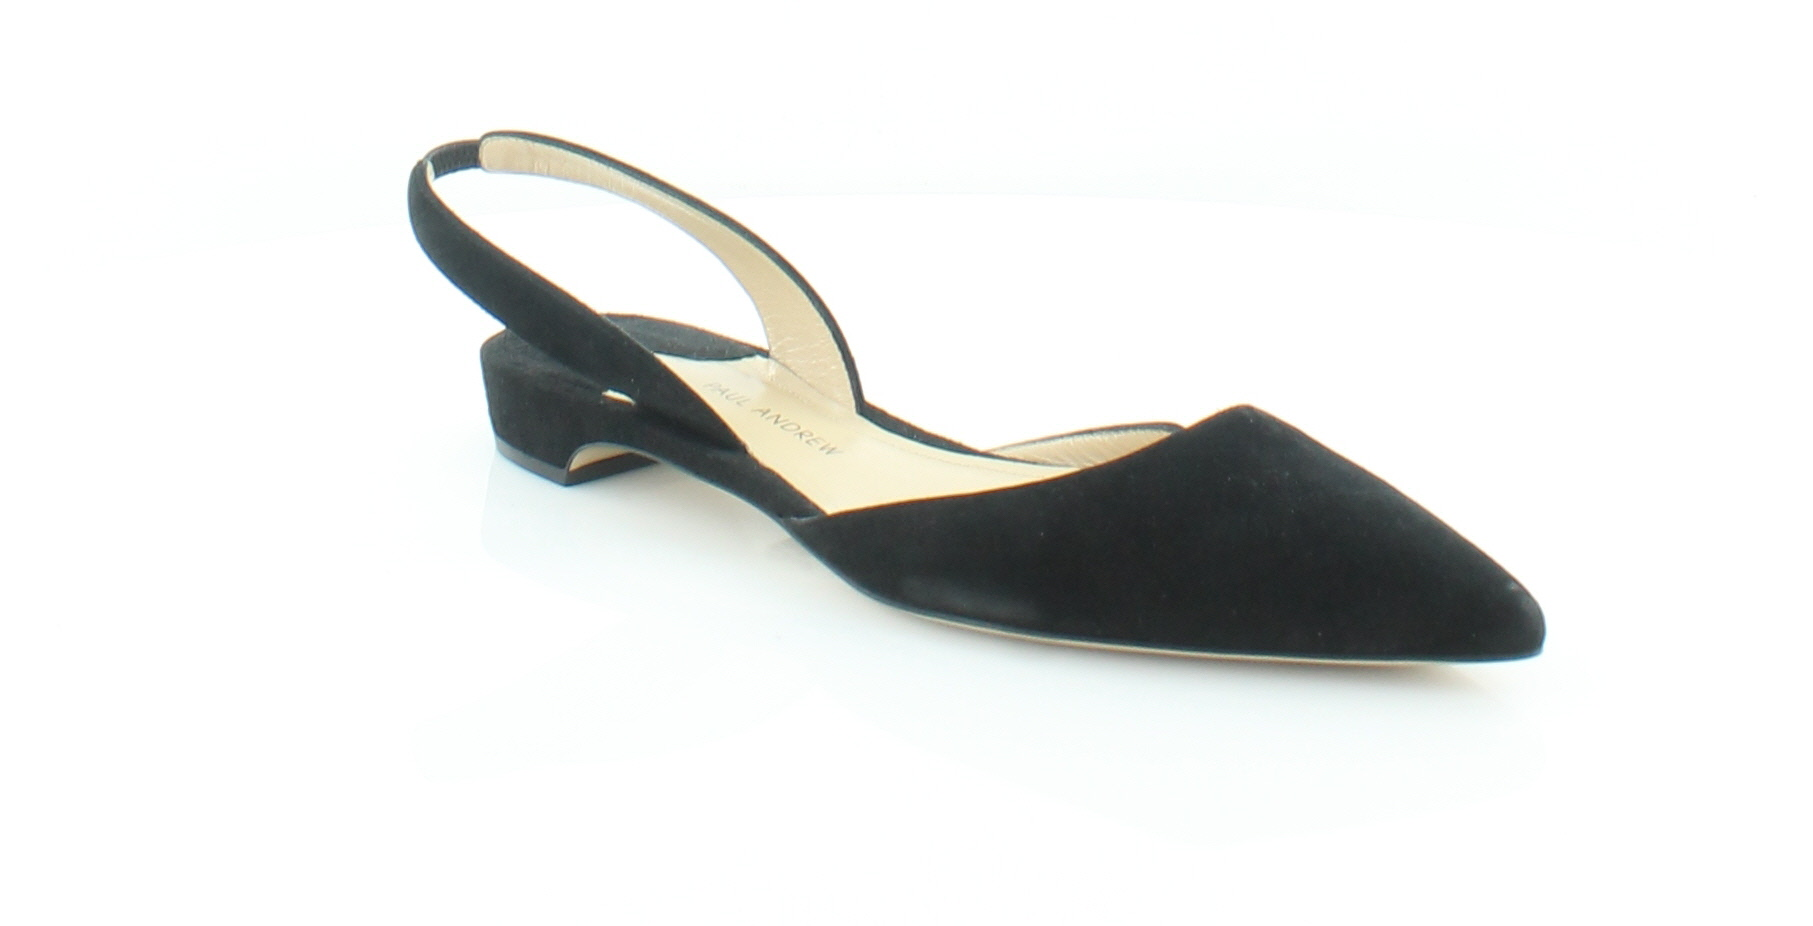 385324cee36 Paul Andrew Rhea Black Womens Shoes Size 7 M Flats MSRP  525 ...